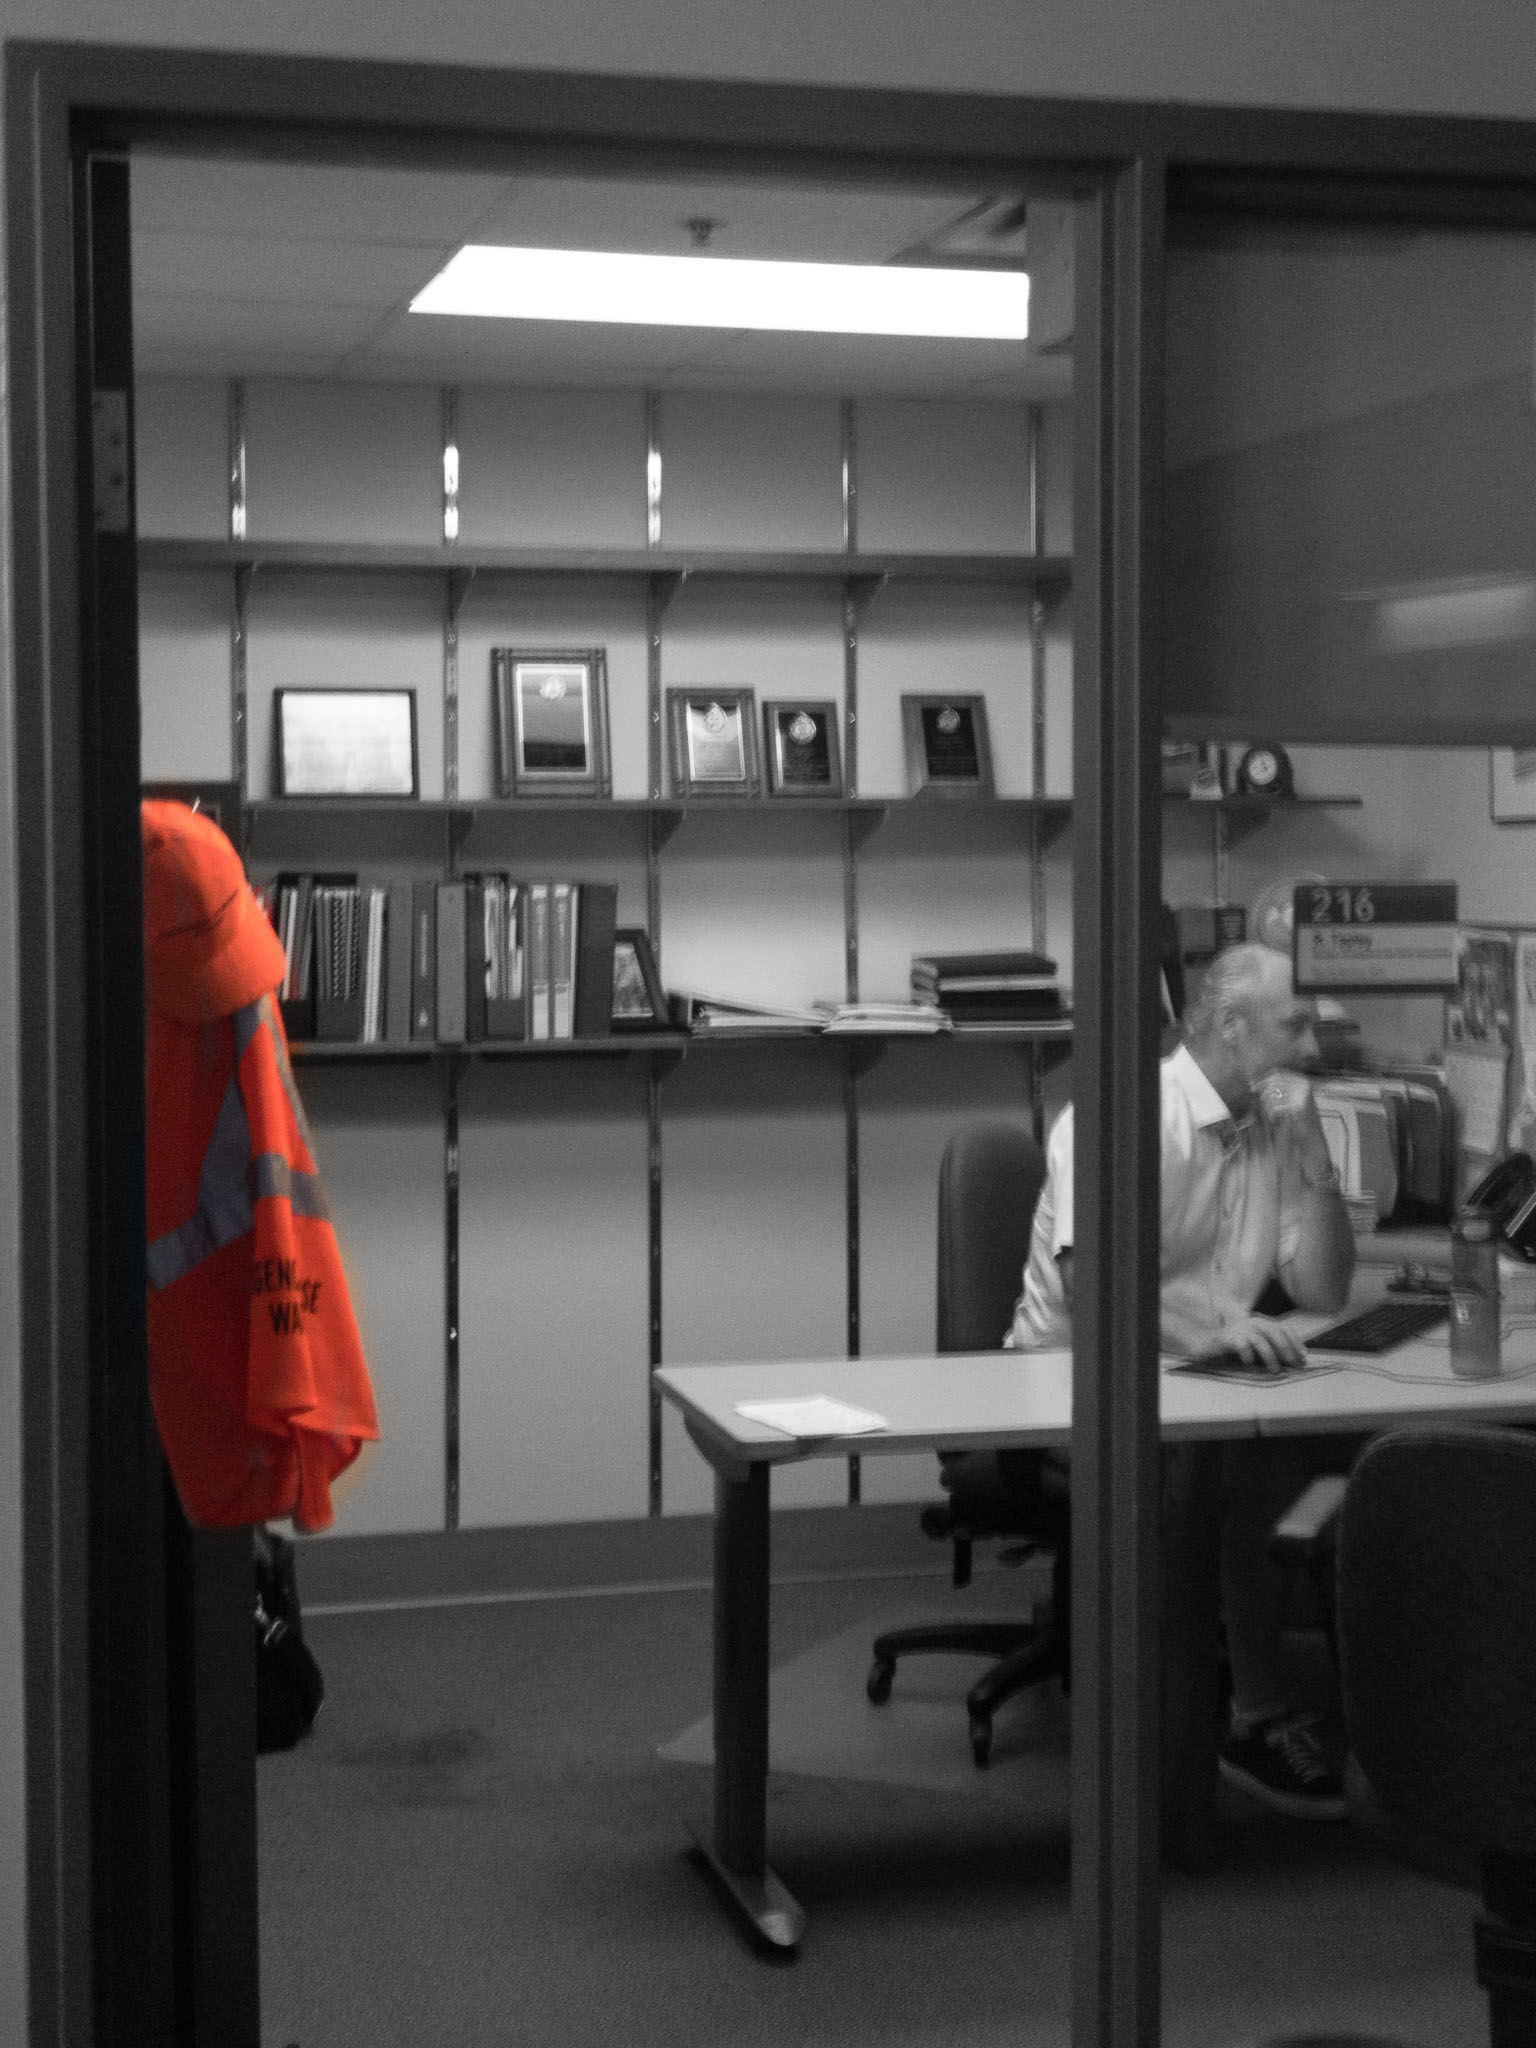 Image of a person at their desk with an emergency response warden hat and vest in the forground